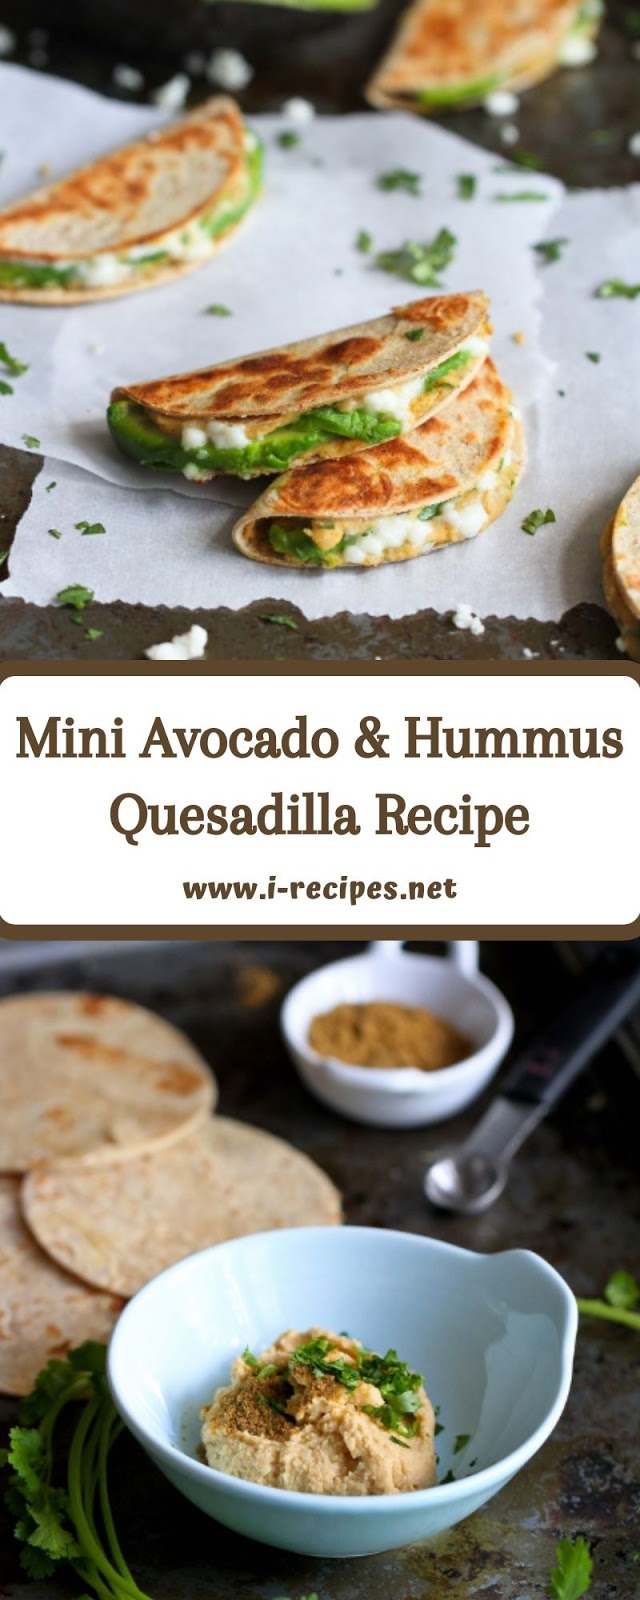 Mini Avocado & Hummus Quesadilla Recipe